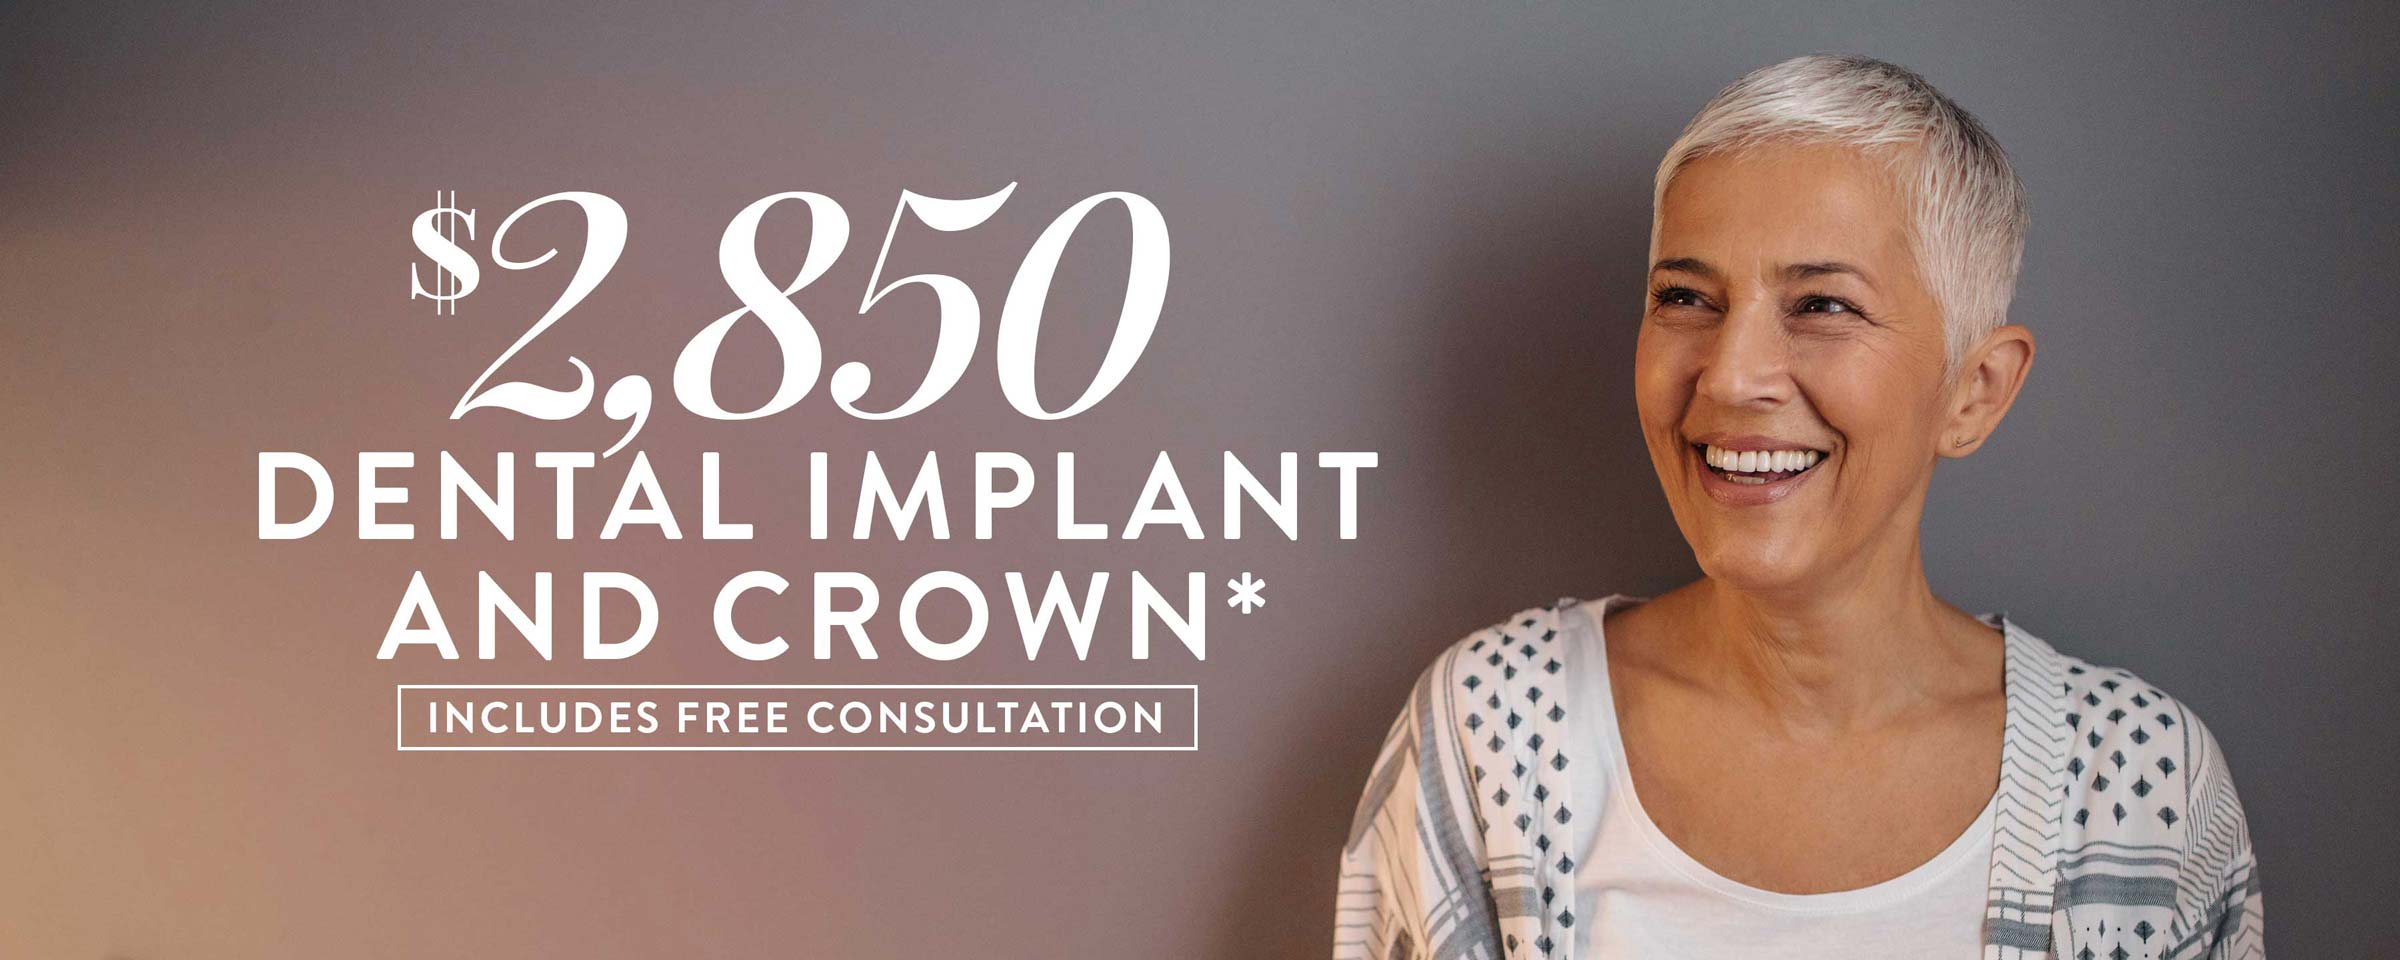 Dental Implant & Crown Only $2,850*